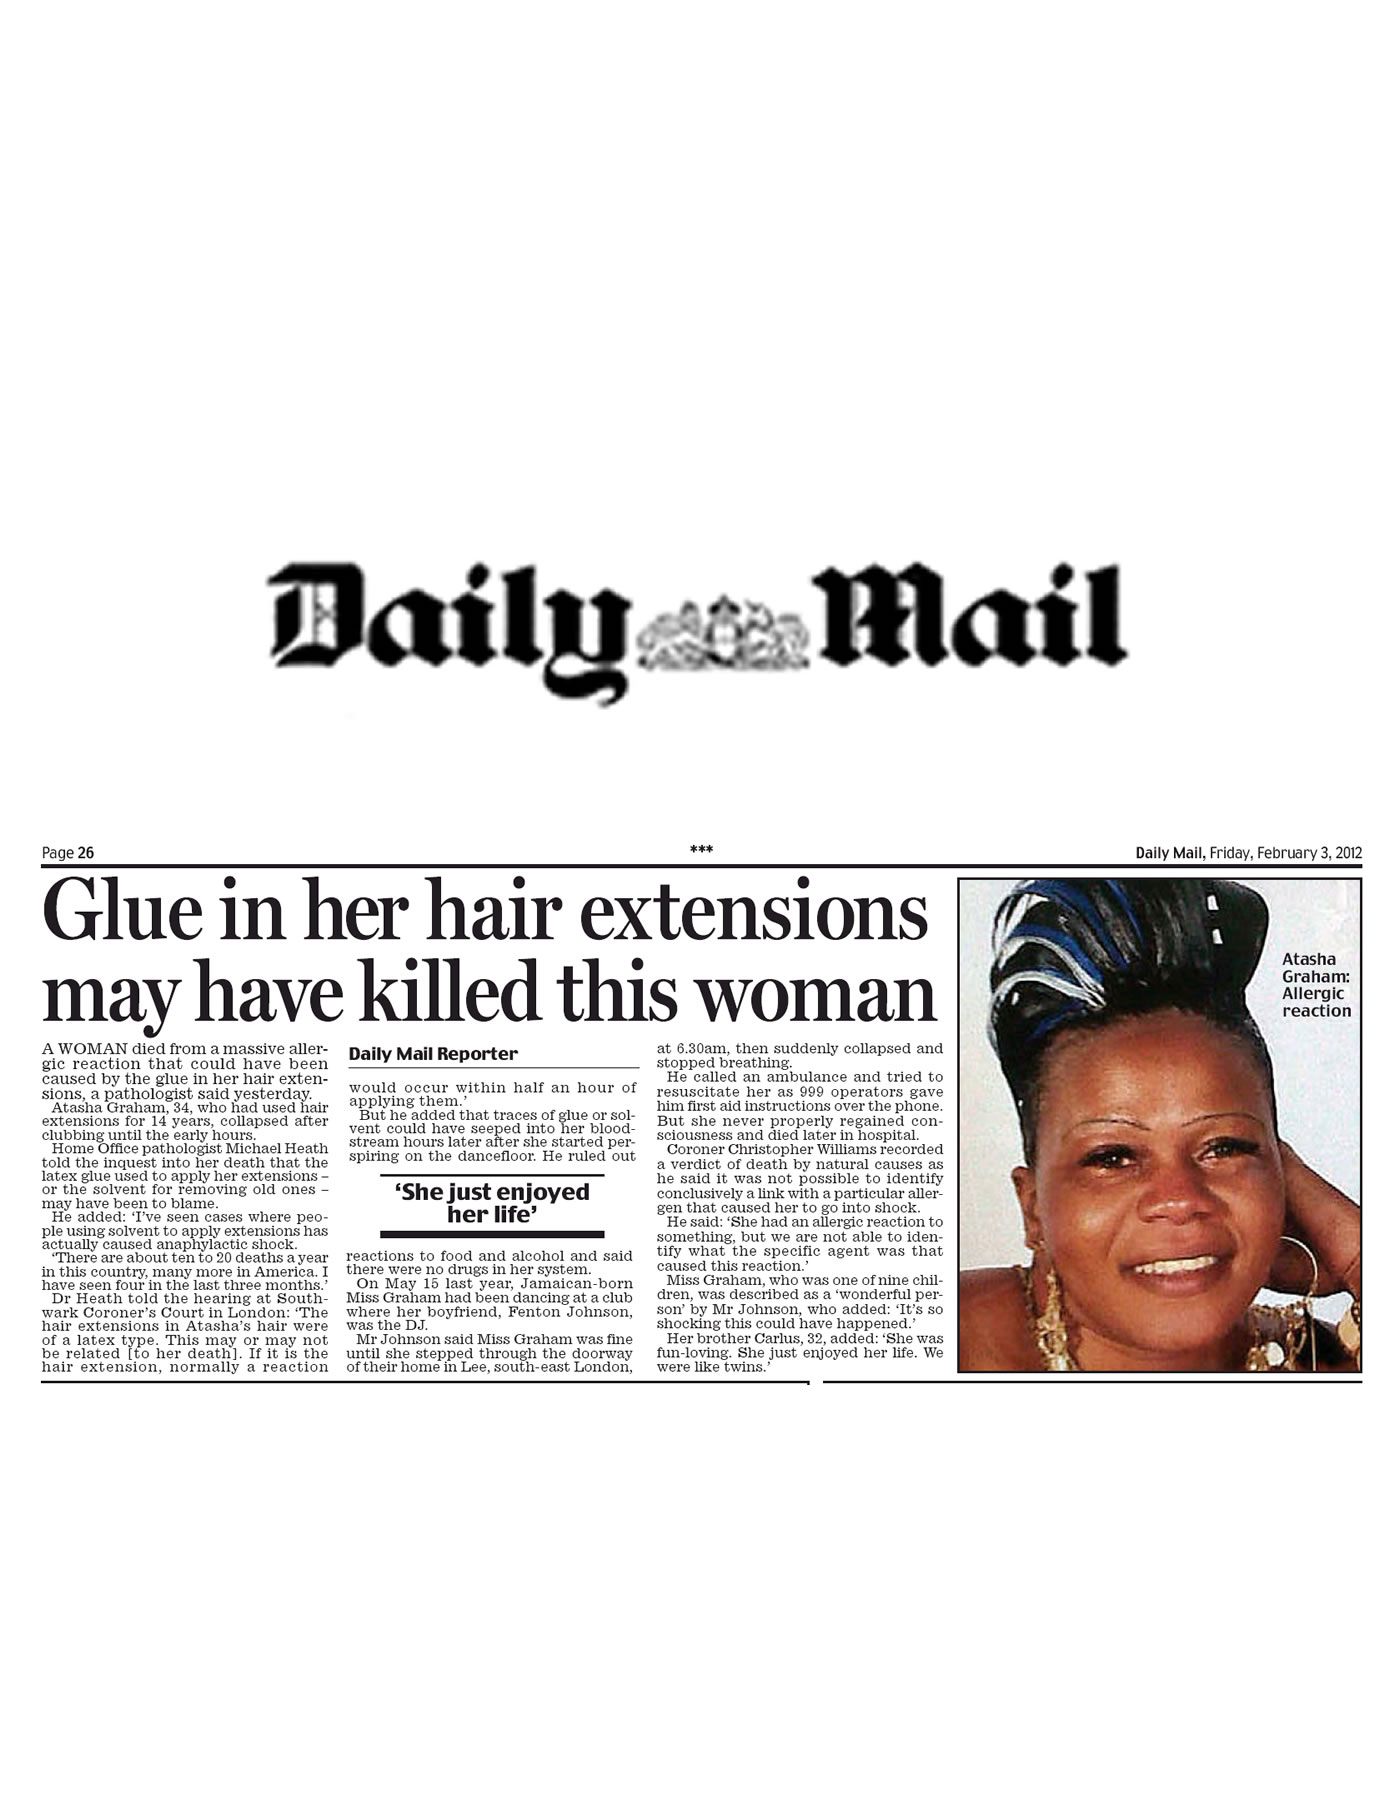 'Glue in her hair extensions may have killed this woman' - Daily Mail